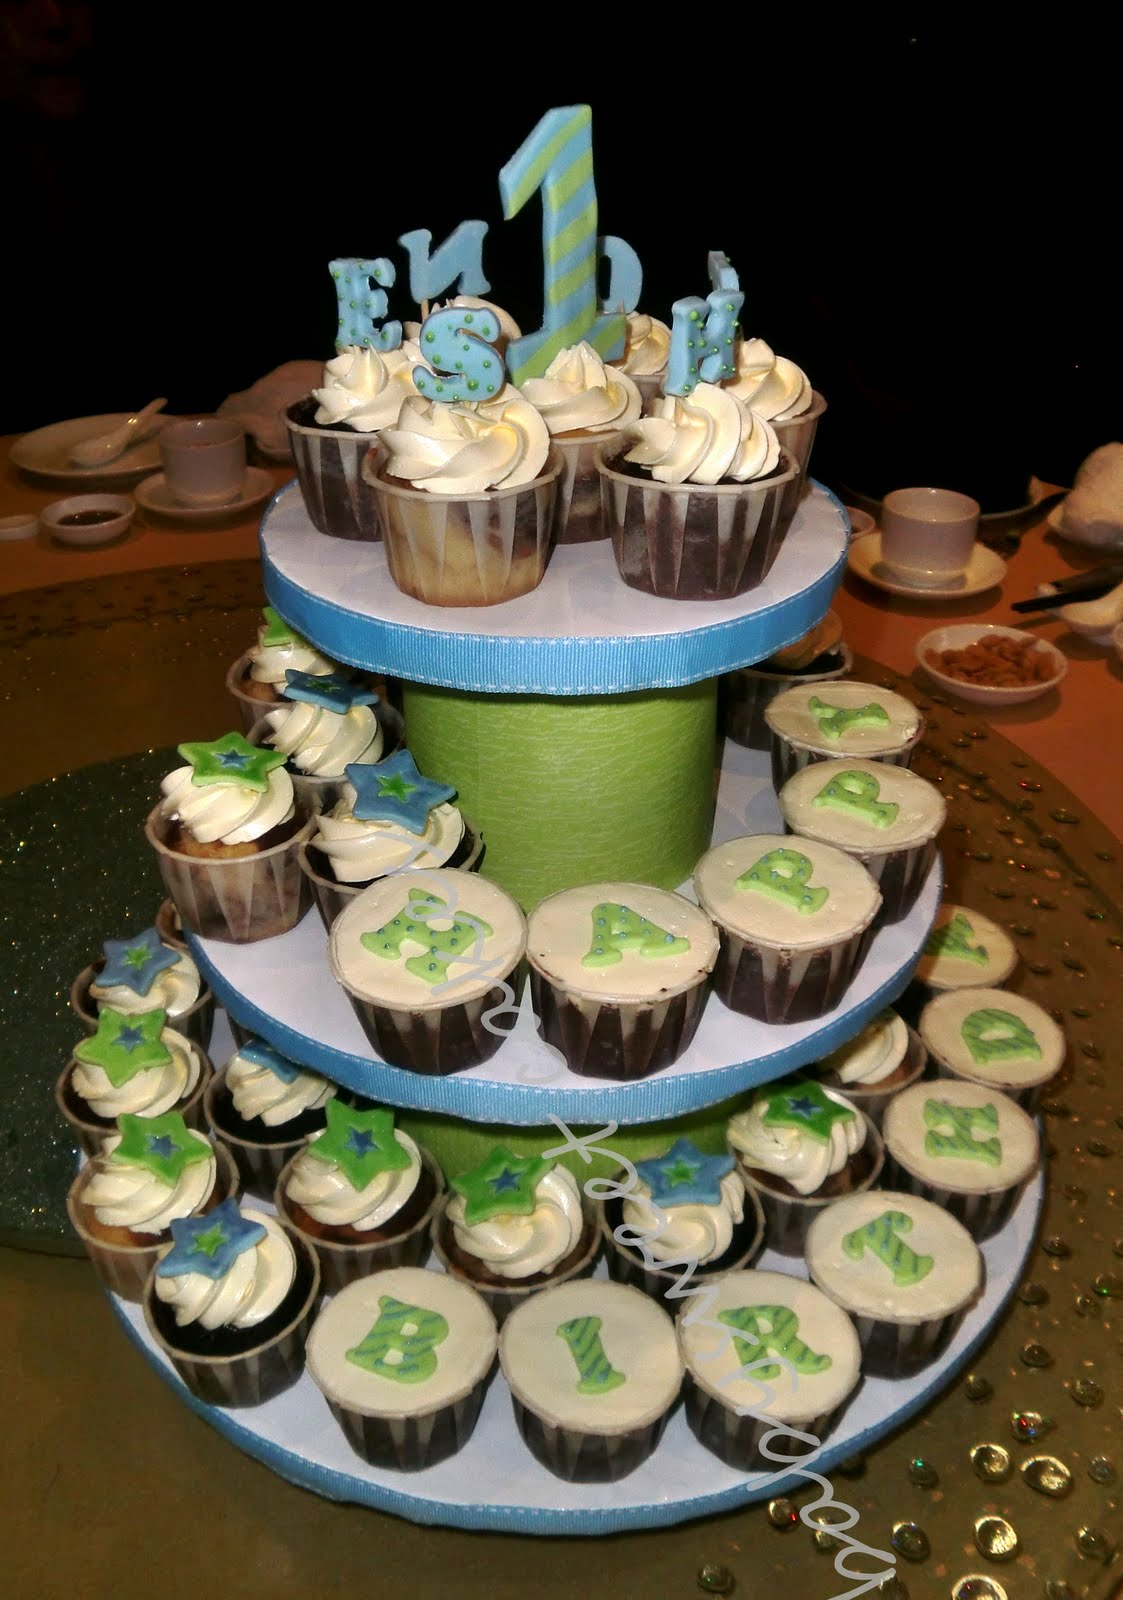 Babysweet Cakes Birthday Cupcake Tiers For 1 Year Old Boy